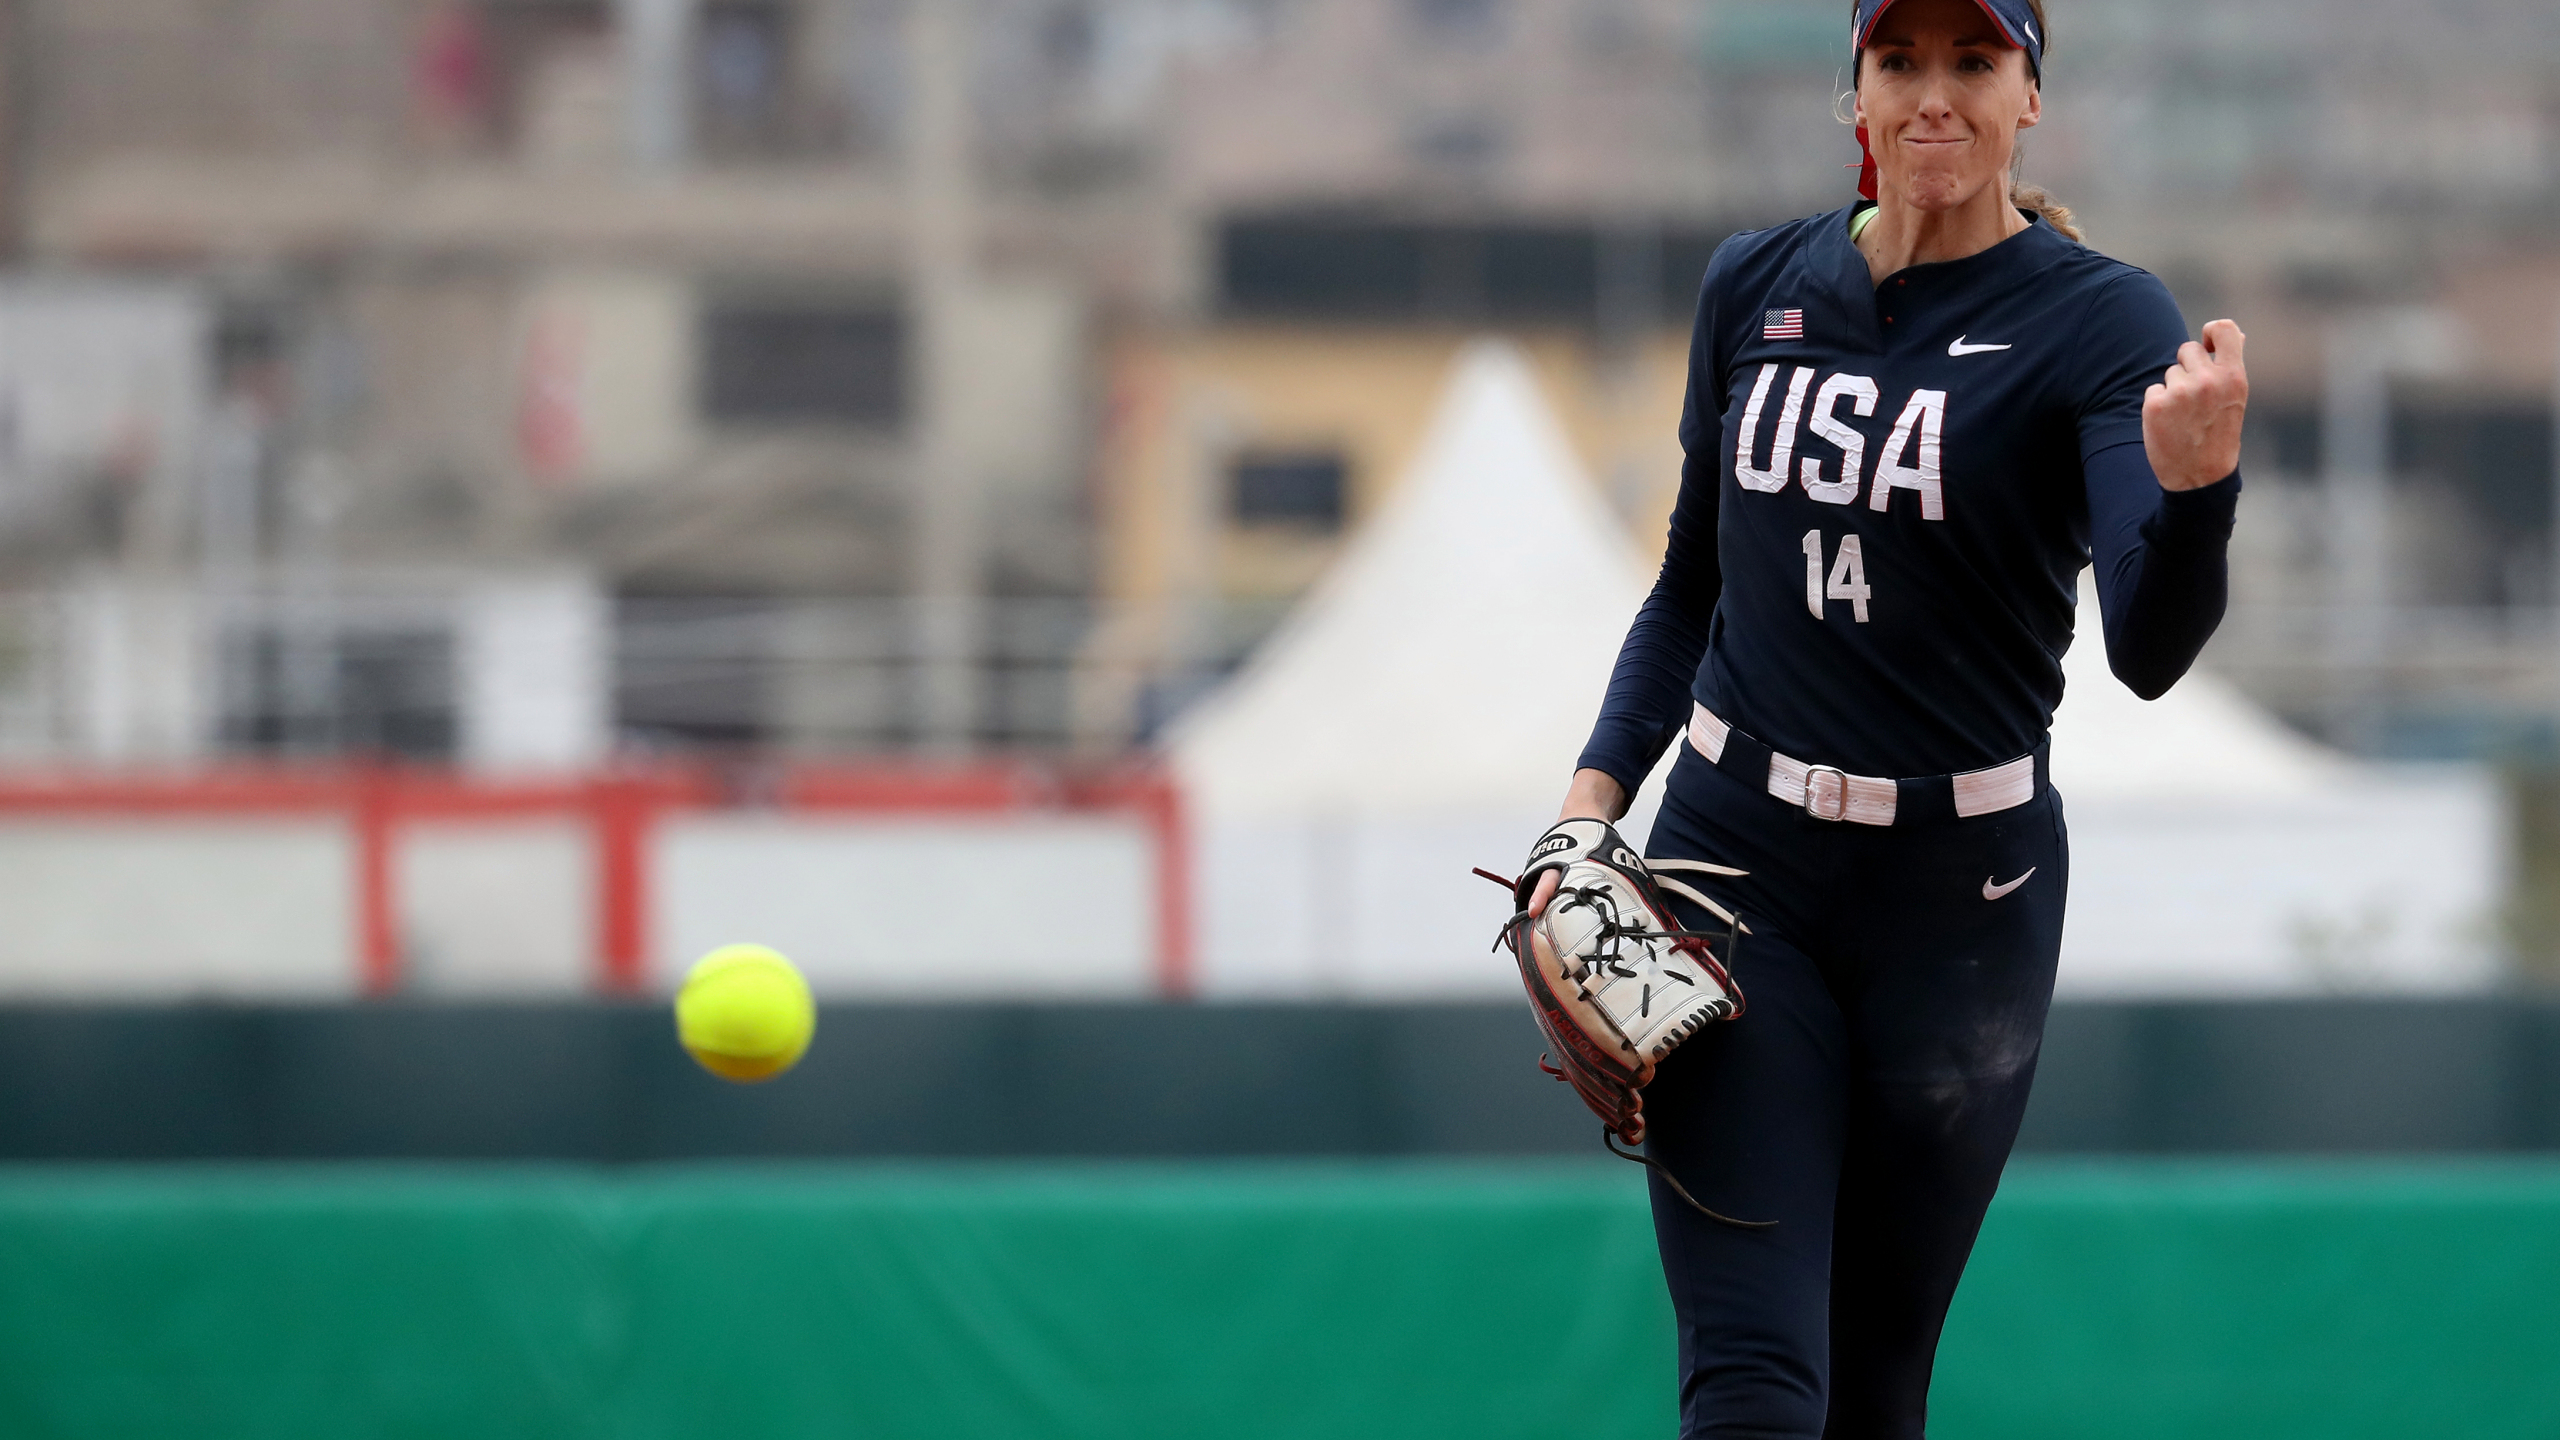 Monica Abbott's Story Is Filled with Pitching Skill and Superb Positivity